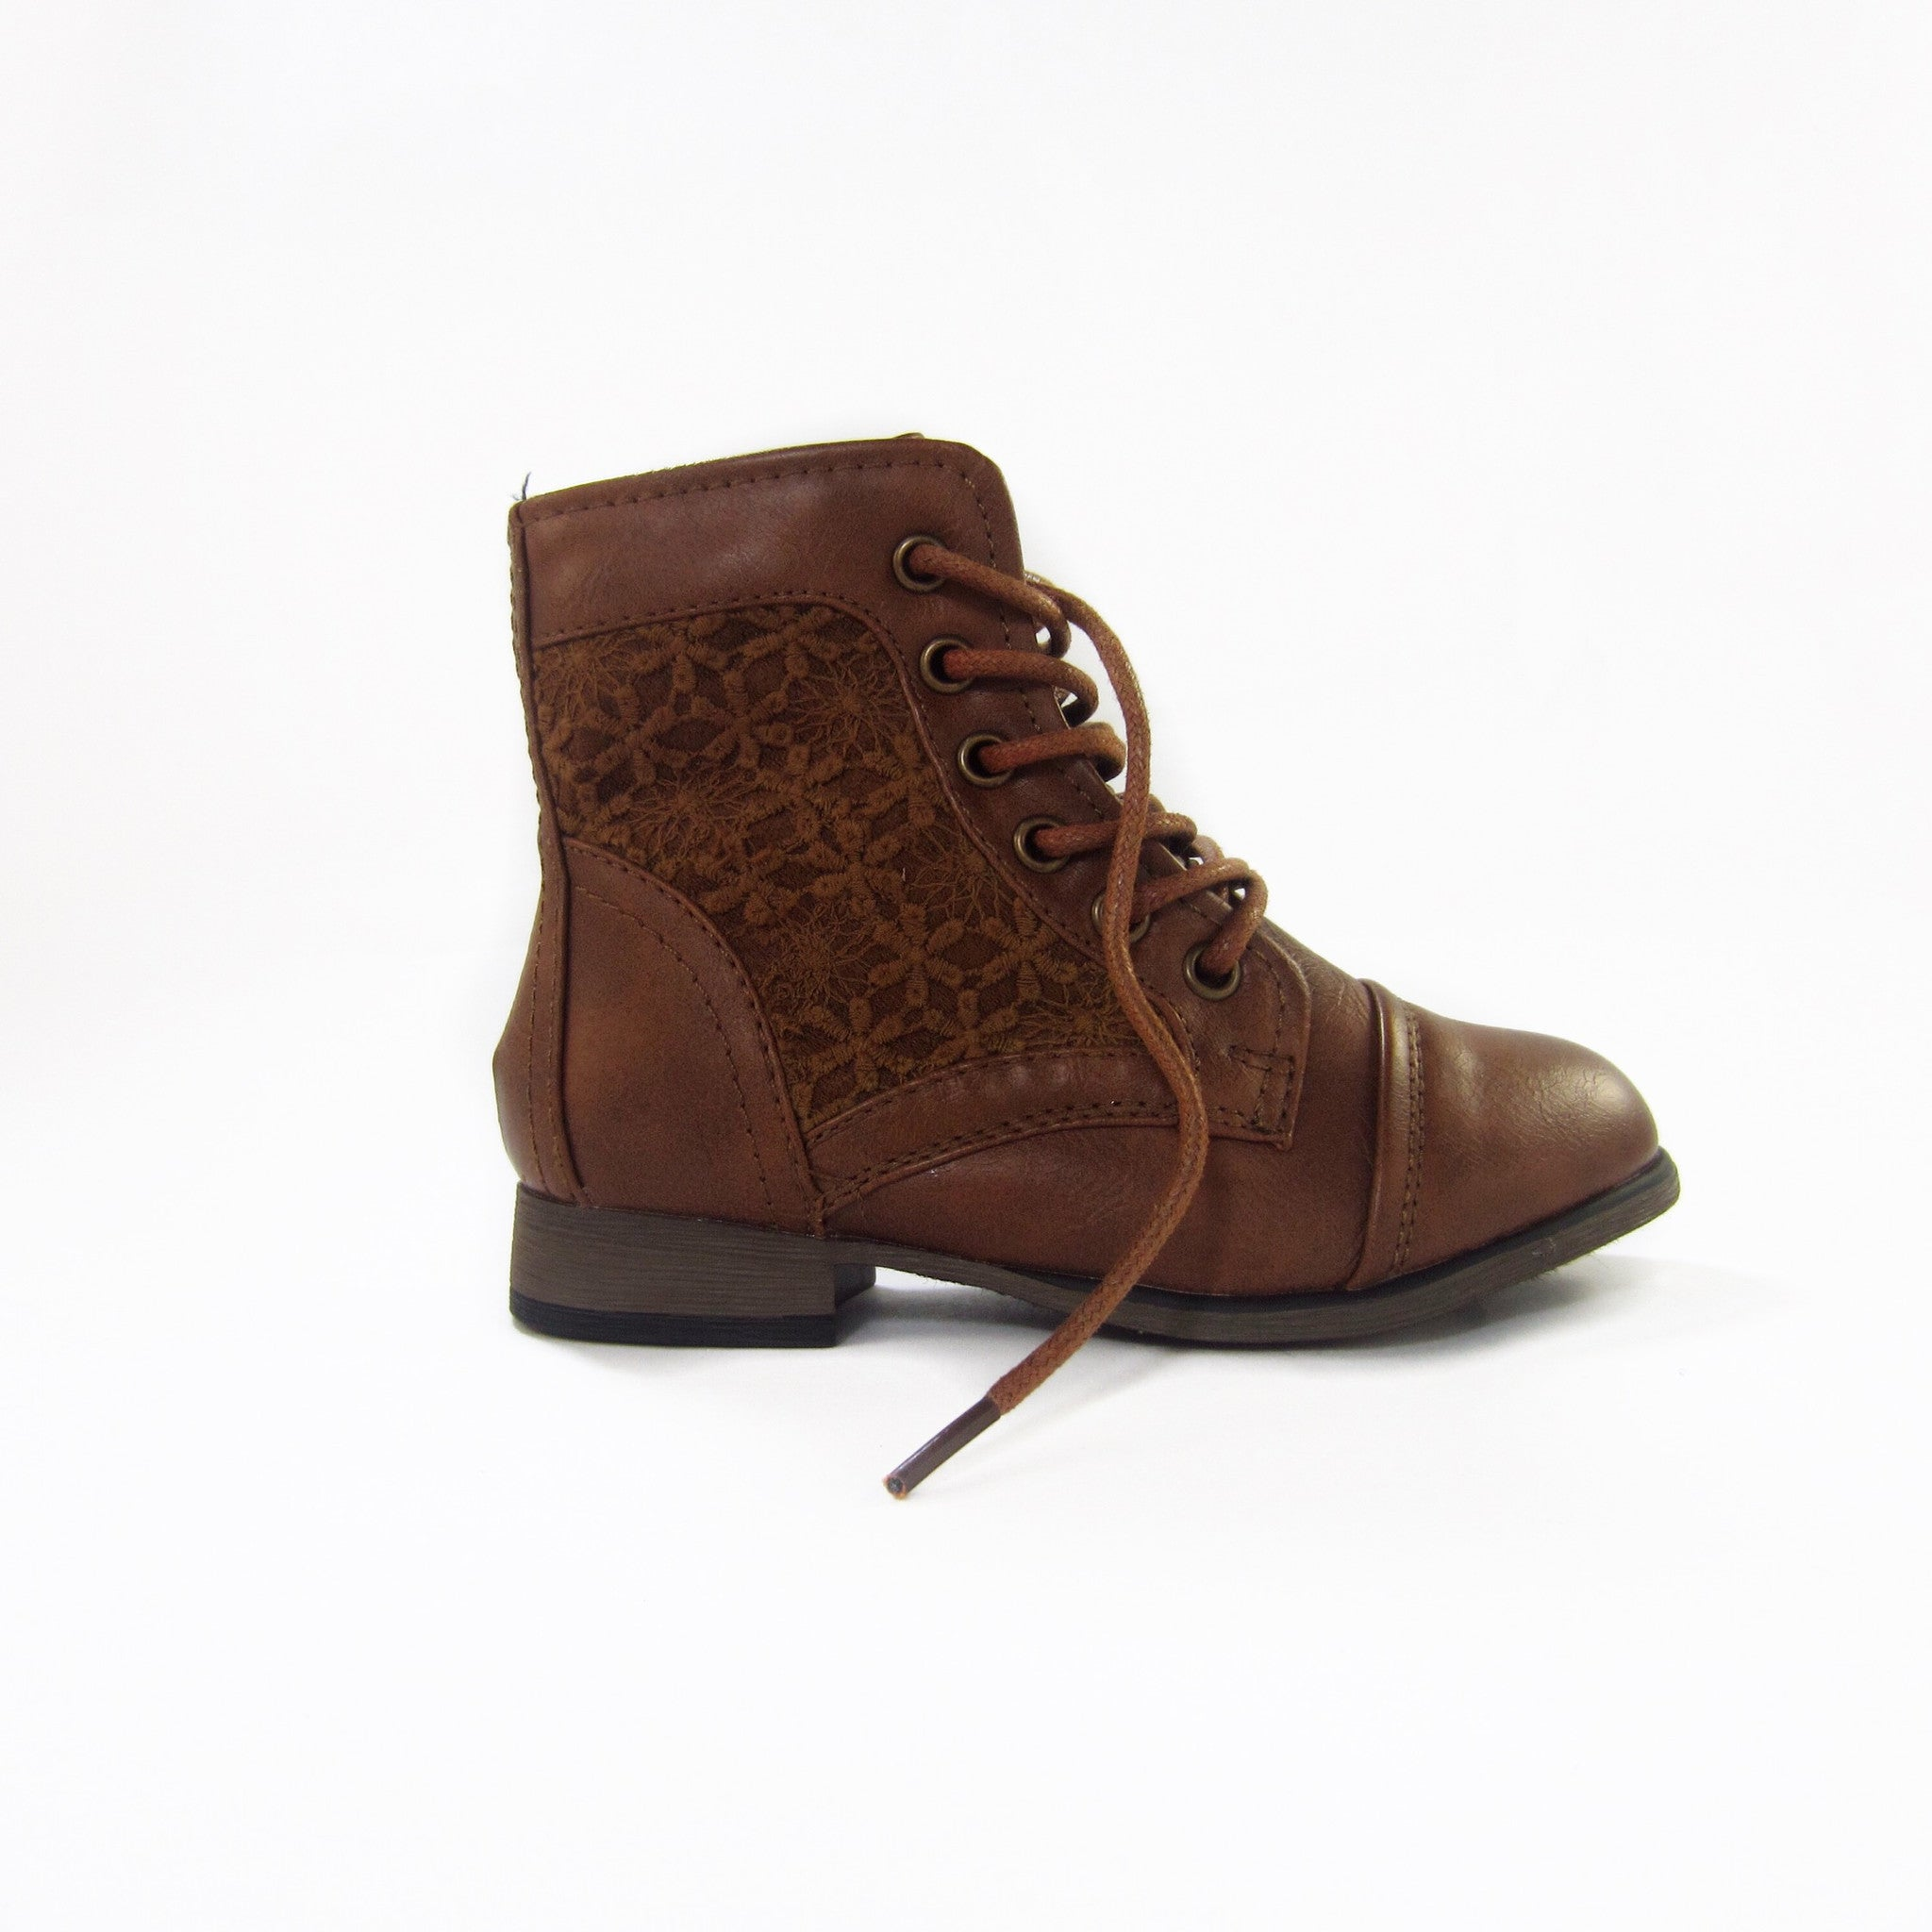 Girls Tan Ankle Boots - Young n Posh